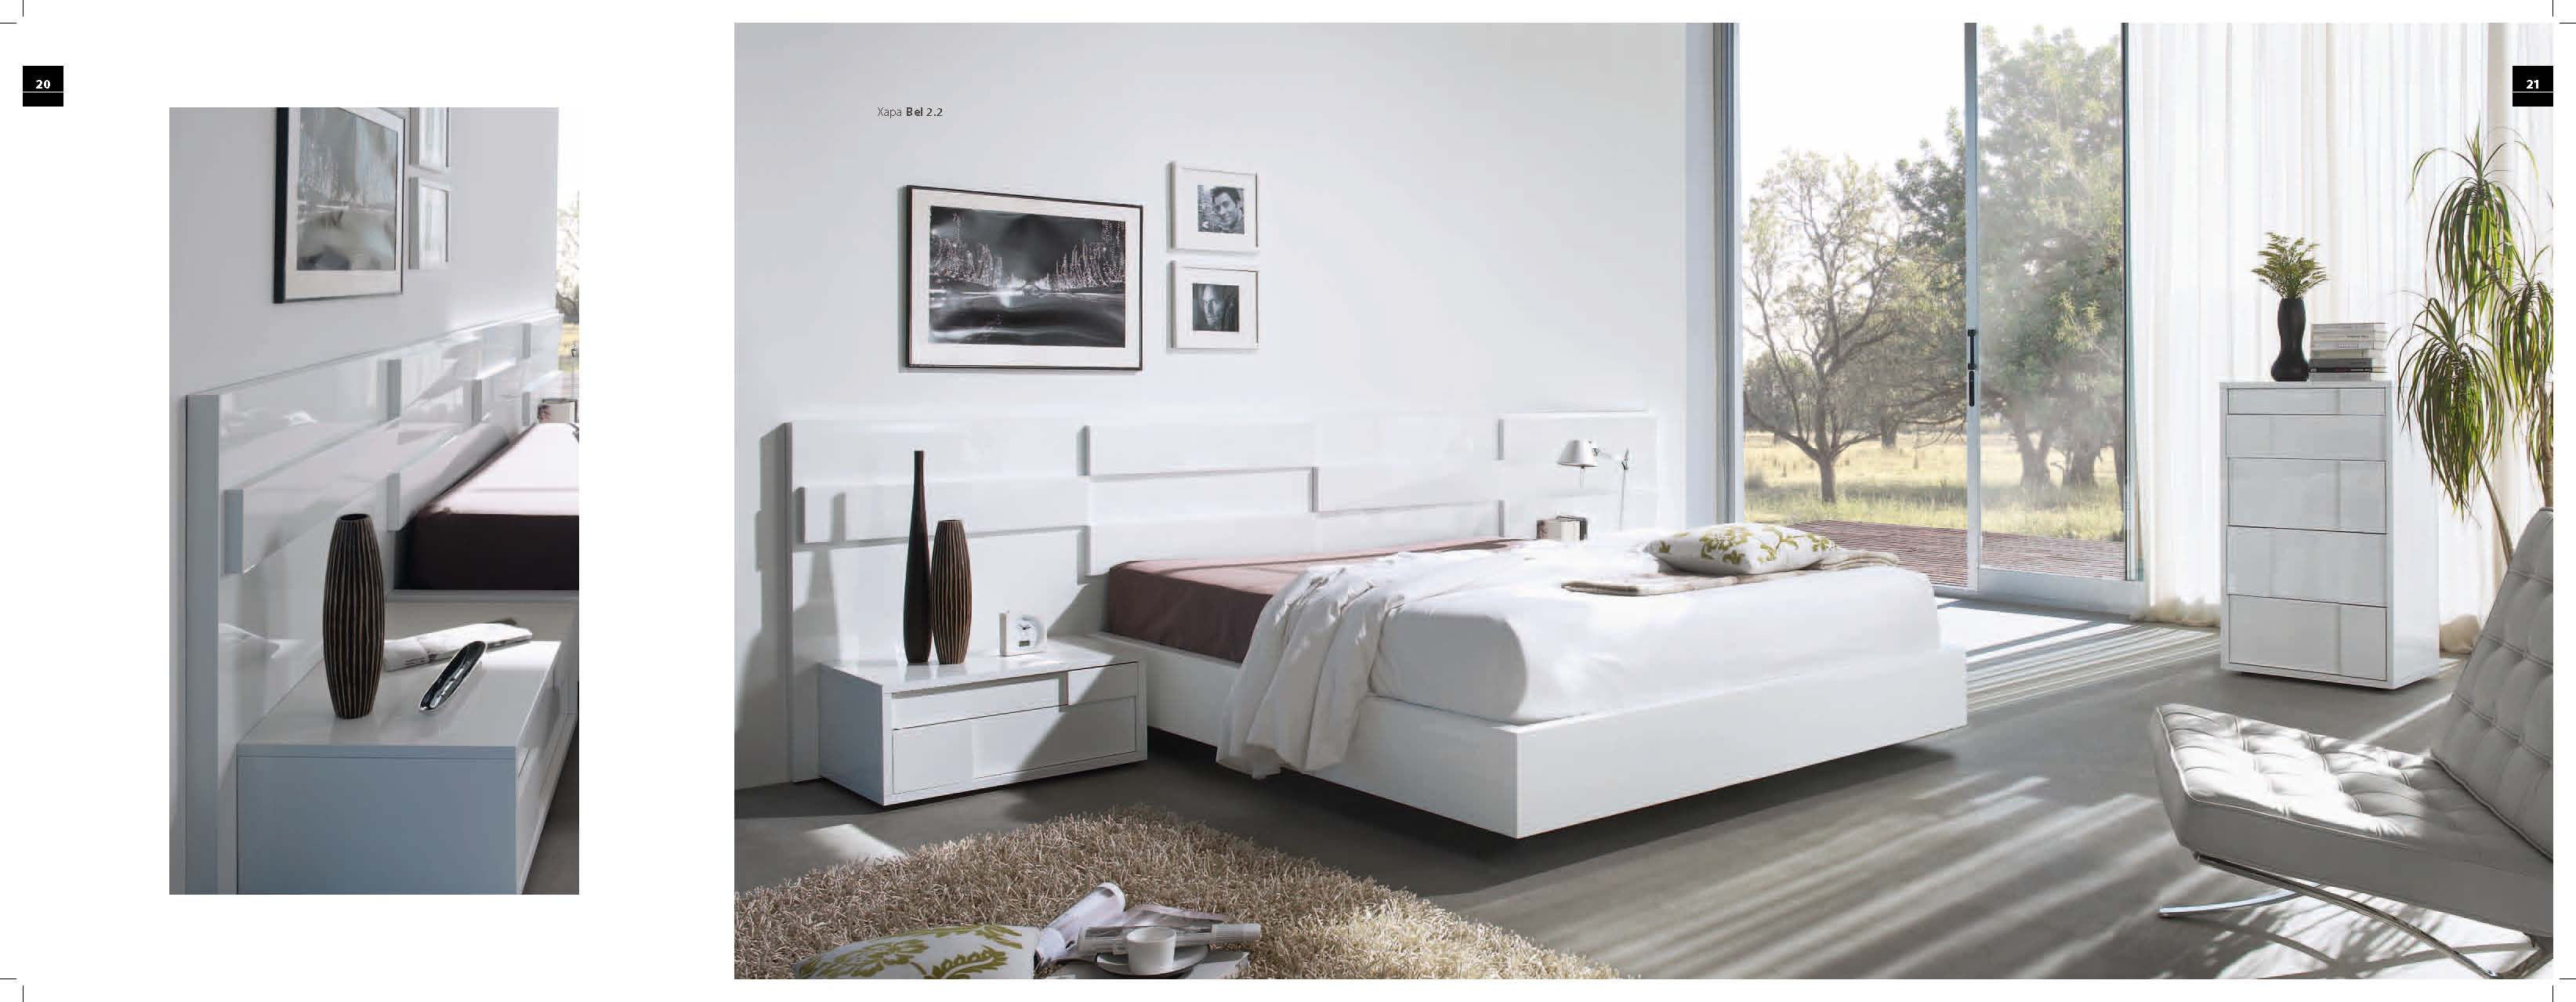 Impressive Modern Bedroom Furniture Product 3287 x 1279 · 218 kB · jpeg